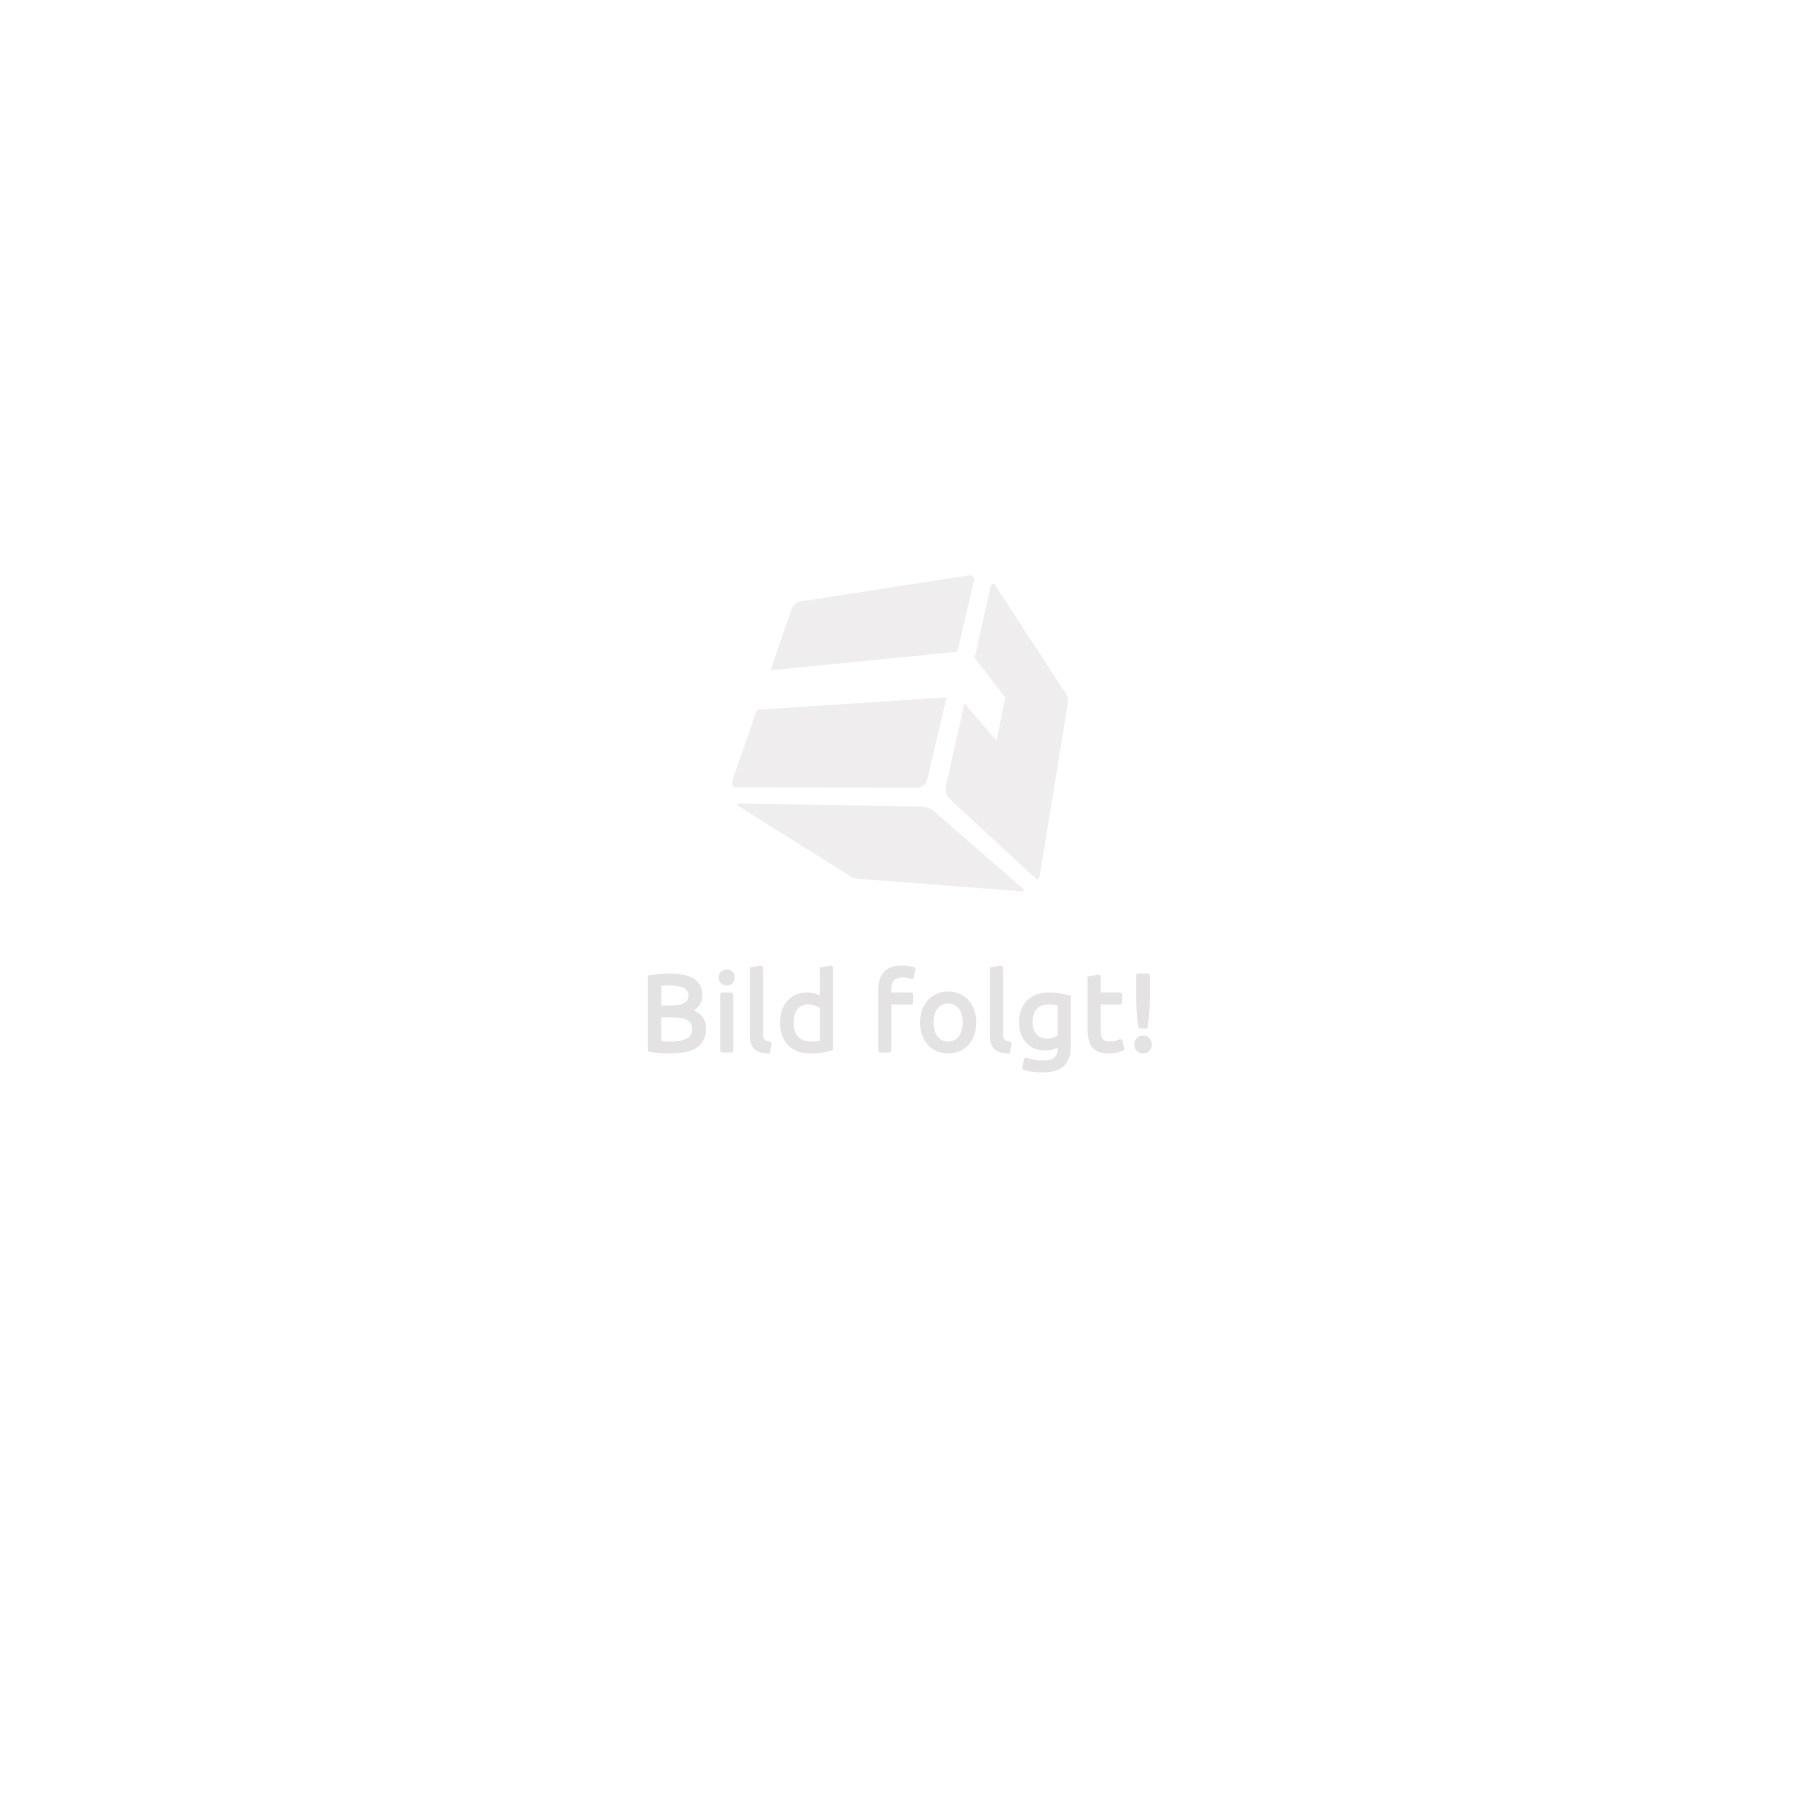 Table de massage Pliante 2 Zones 7,5 cm d'épaisseur blanc